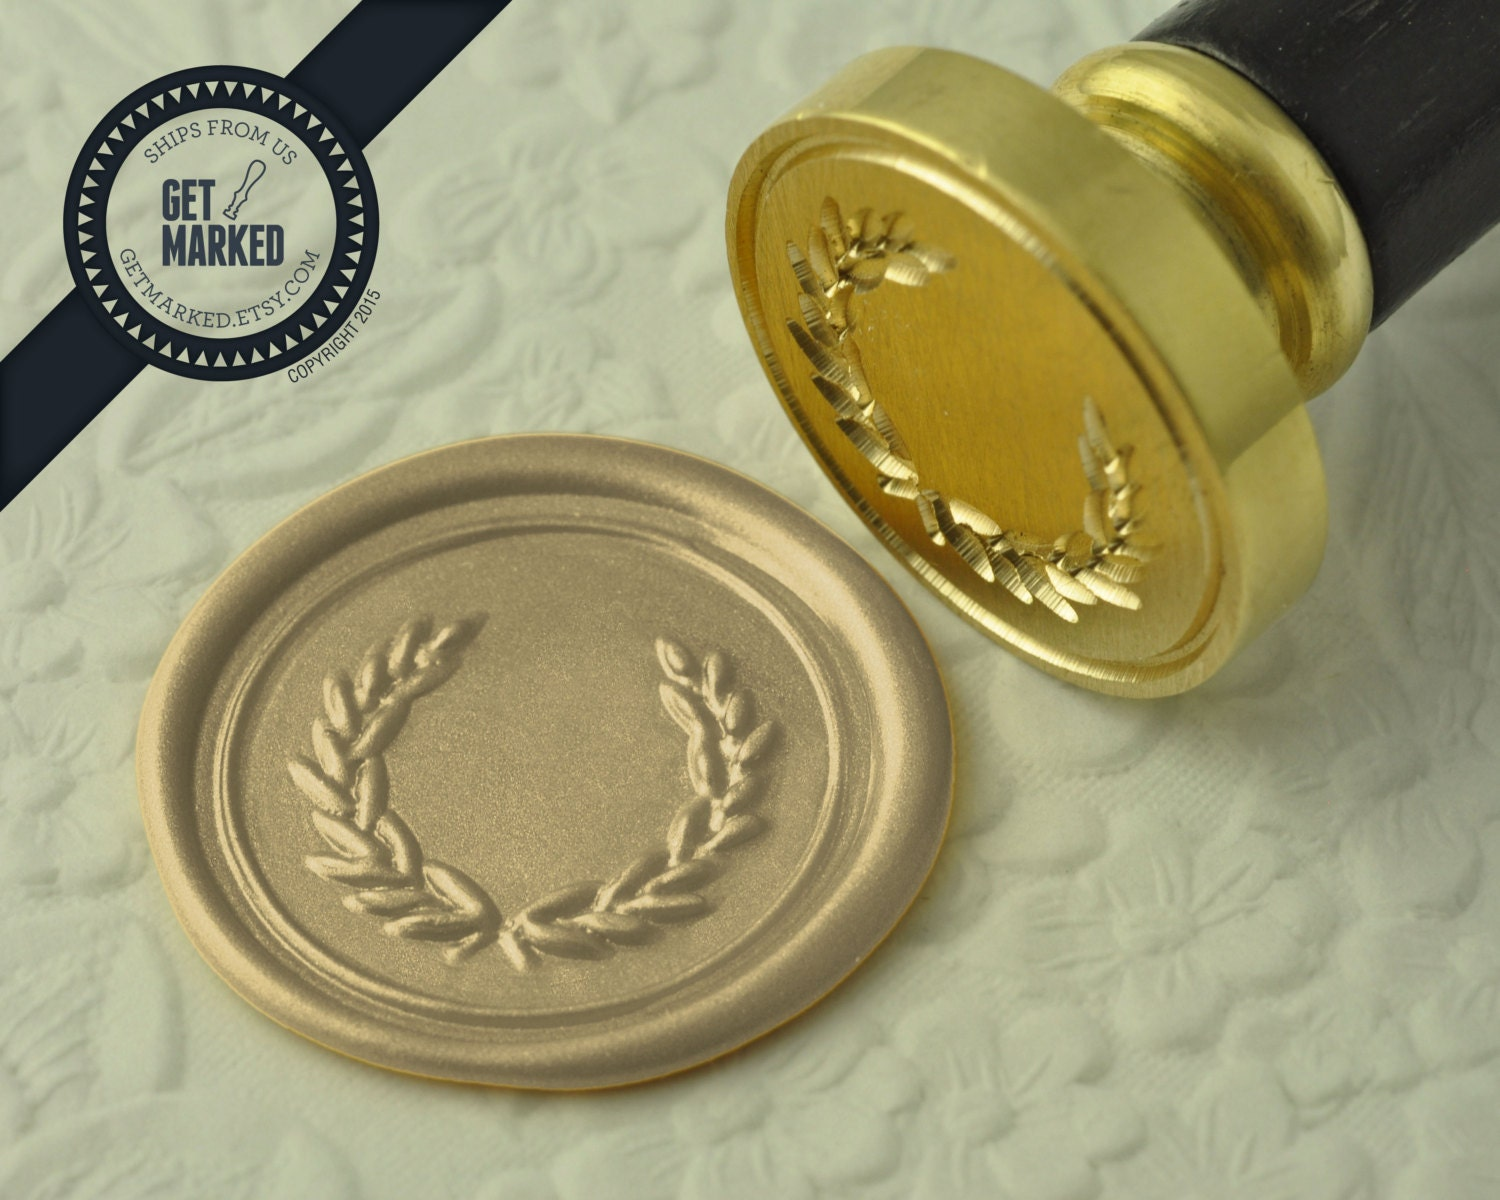 Branch Wreath Wax Seal Stamp by Get Marked WS0080